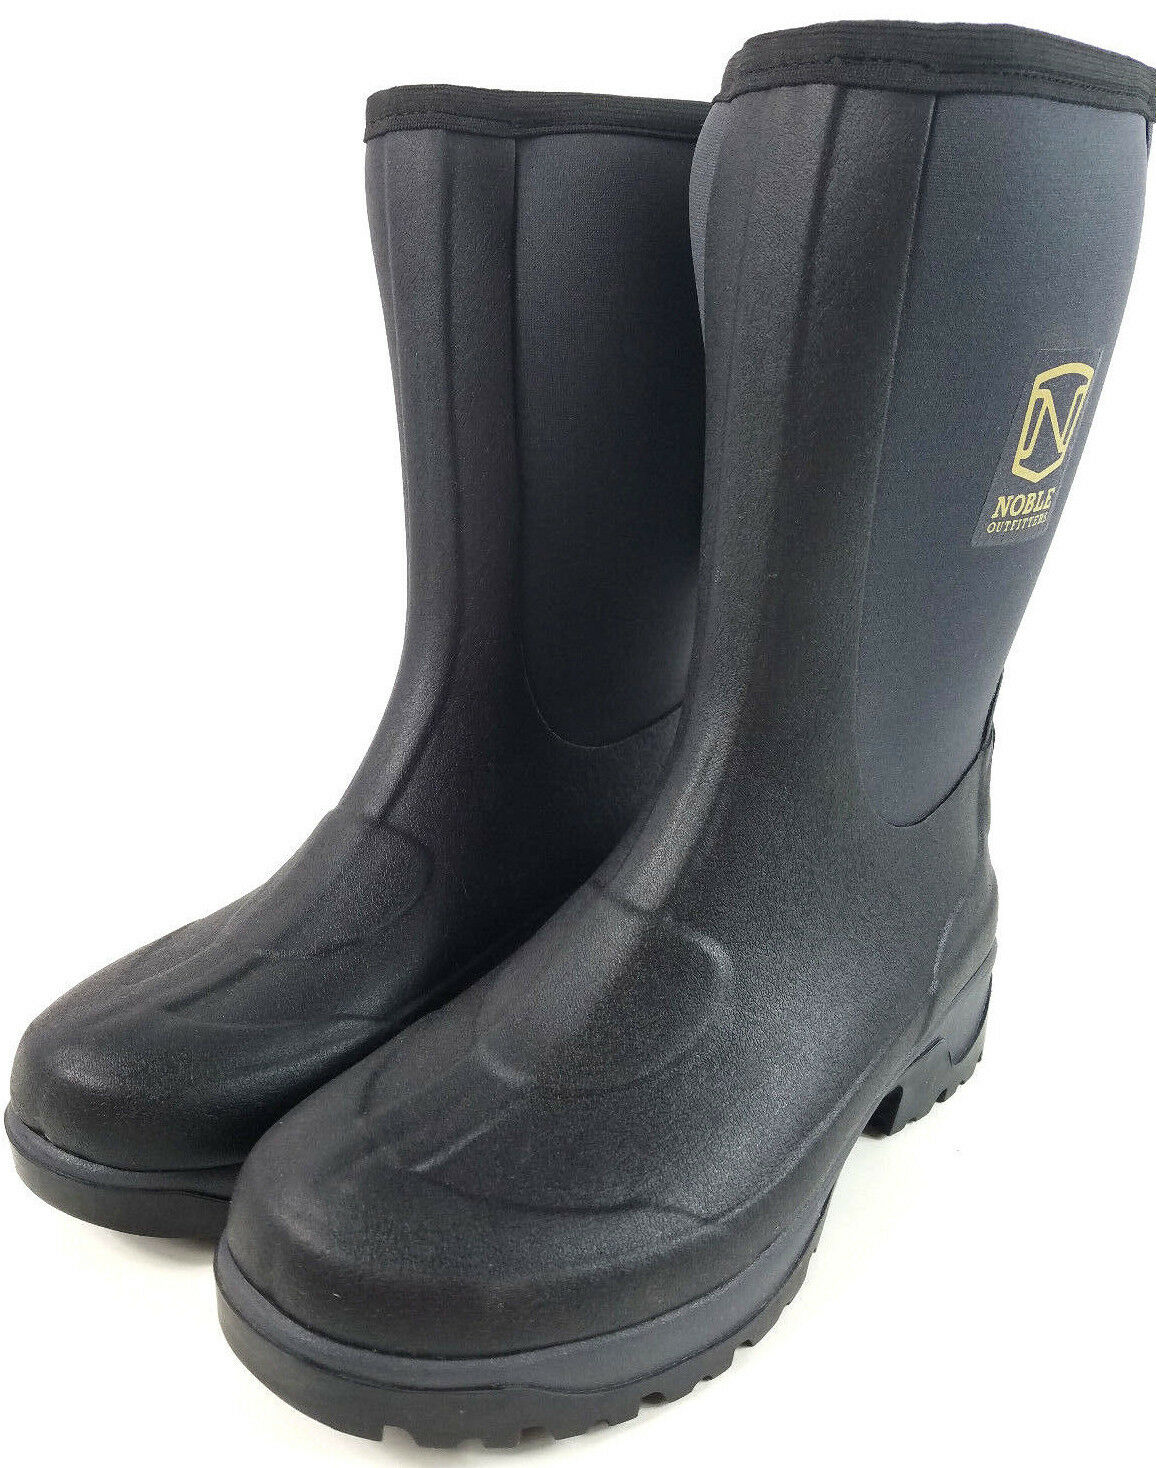 NWT NOBLE OUTFITTERS Men's Size 9 Boots MUDS Mid Style 65000 Equestrian Riding